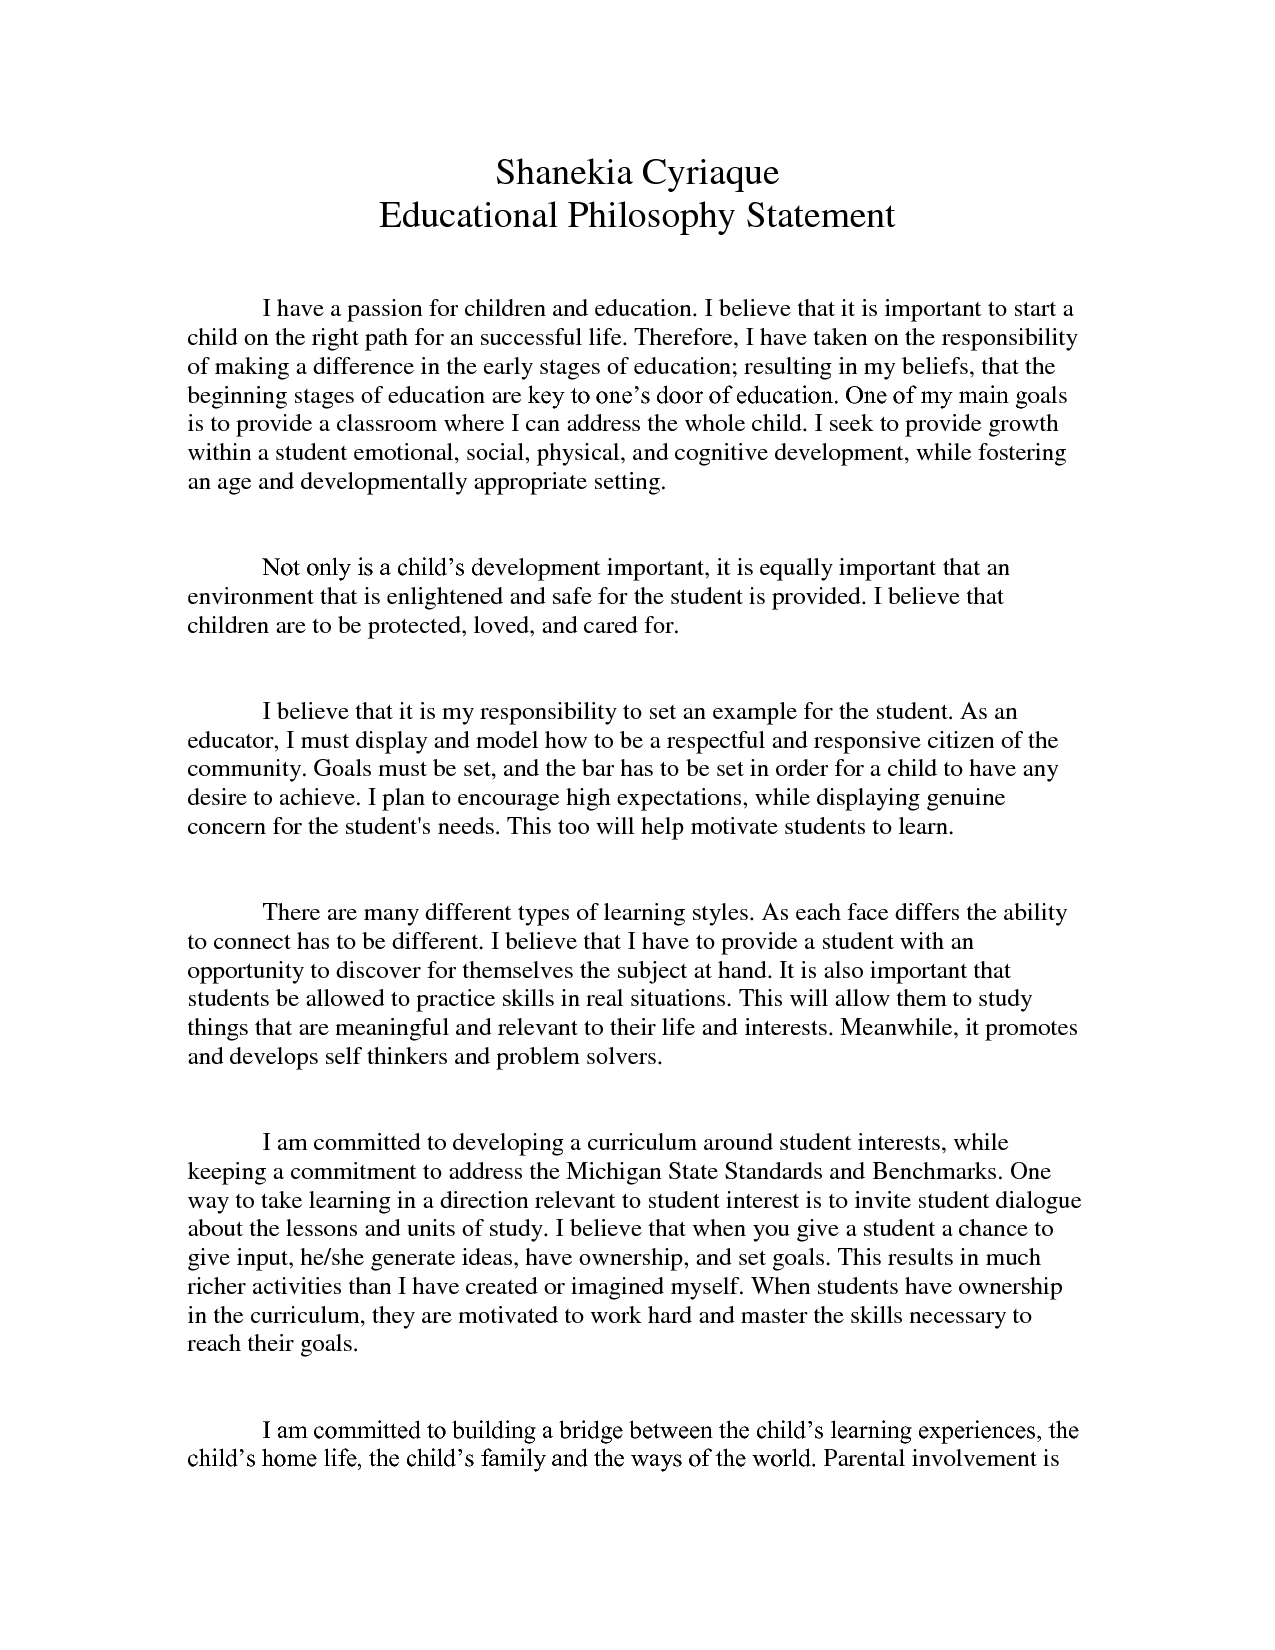 ⇗ educational philosophy statement samples cda ⇗ educational philosophy statement samples